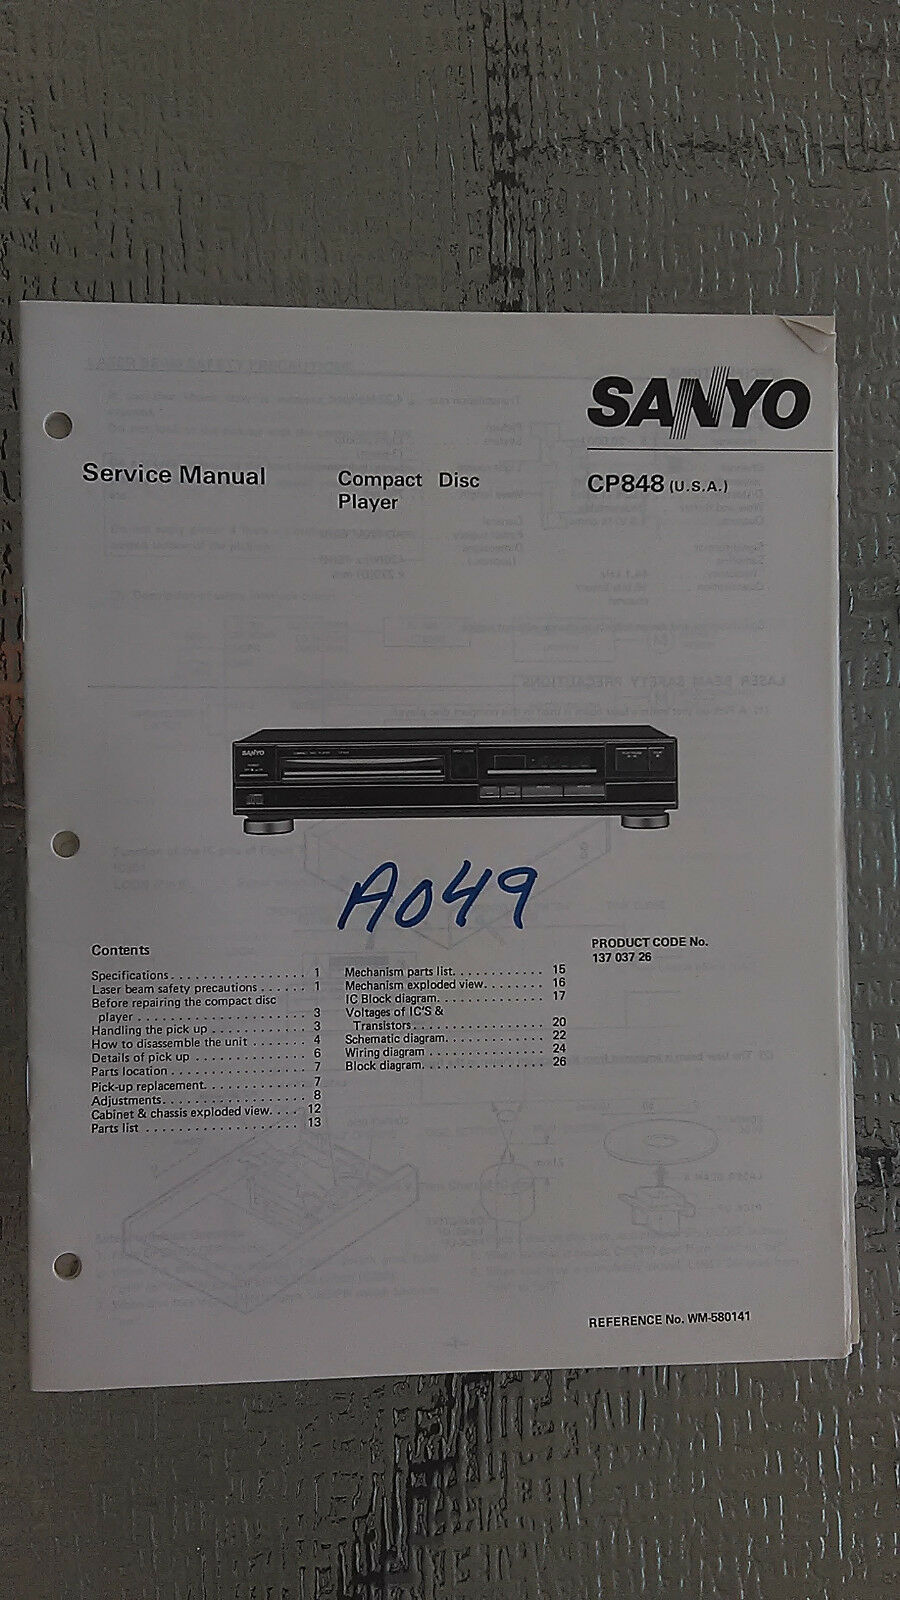 Sanyo Car Stereo Wiring Diagram Diagrams Data Base Cd Player Parts Electrical Rh Wiringforall Today On Speaker For Cp848 Service Manual Original